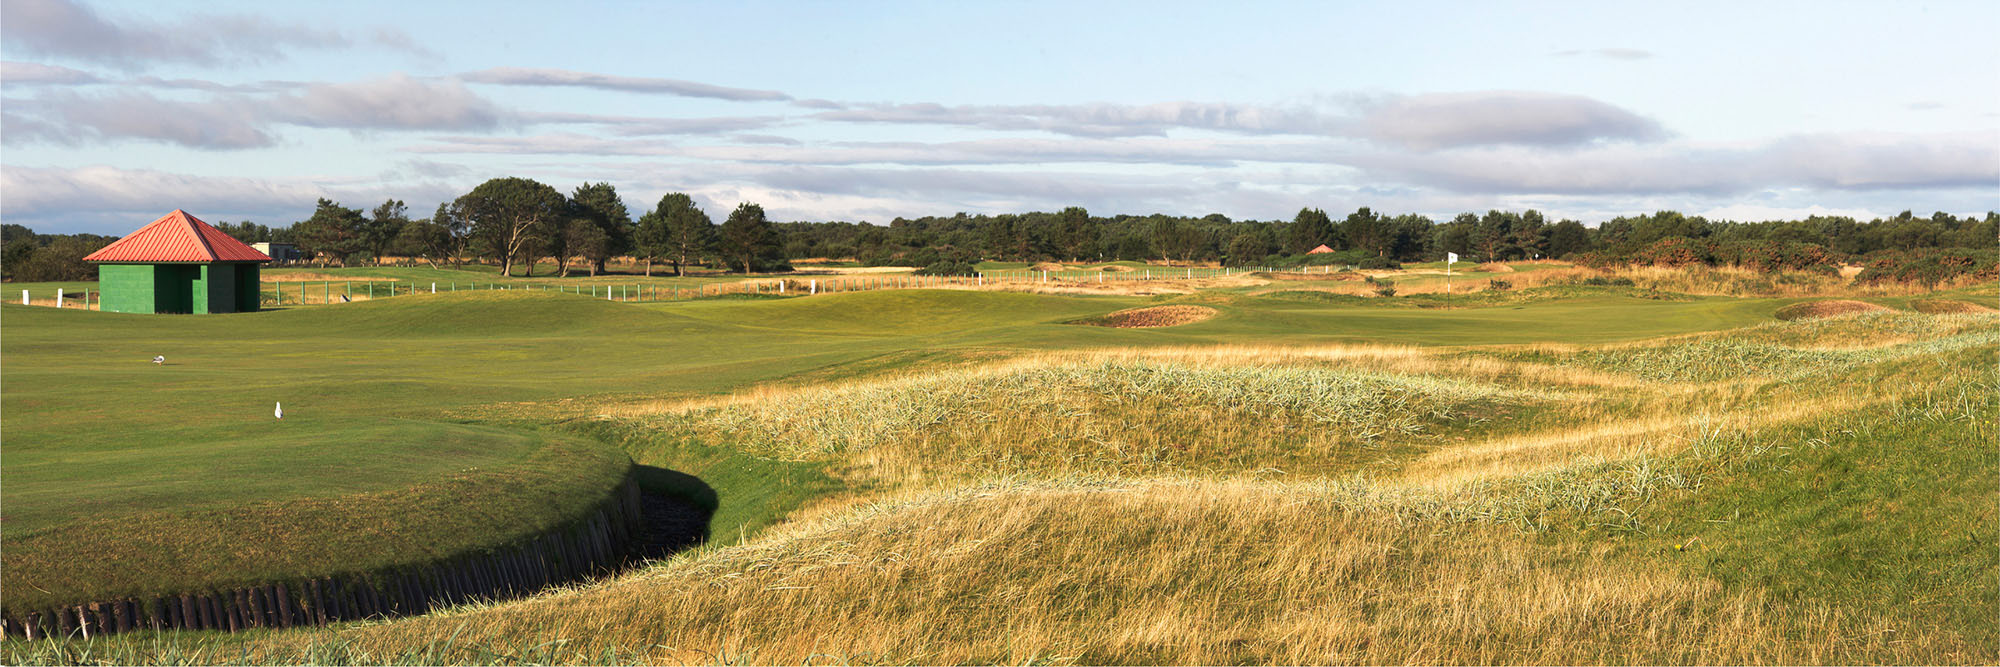 Golf Course Image - Carnoustie Golf Links No. 6